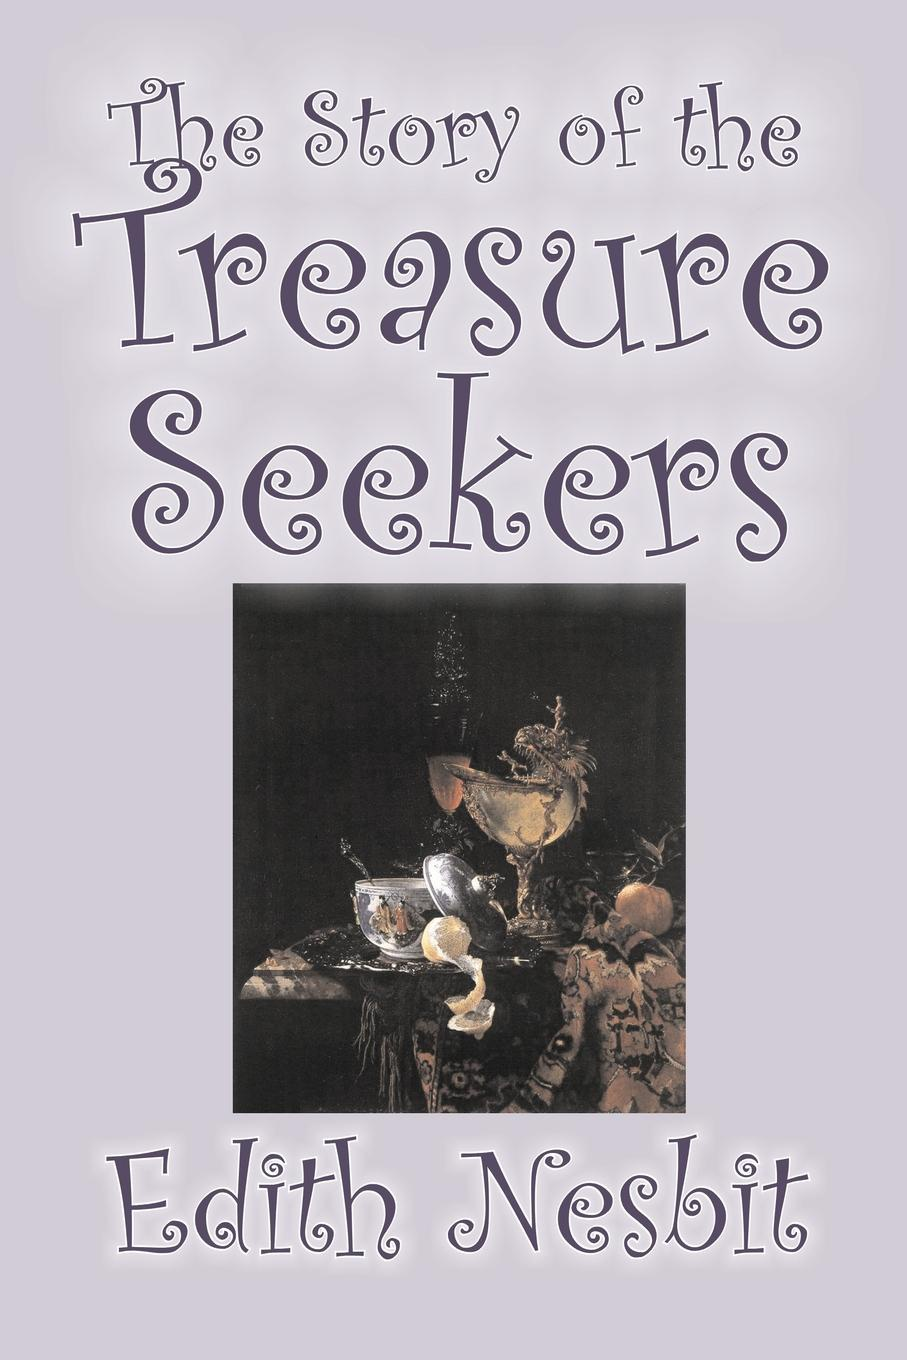 Edith Nesbit The Story of the Treasure Seekers by Edith Nesbit, Fiction, Family, Siblings, Fantasy & Magic